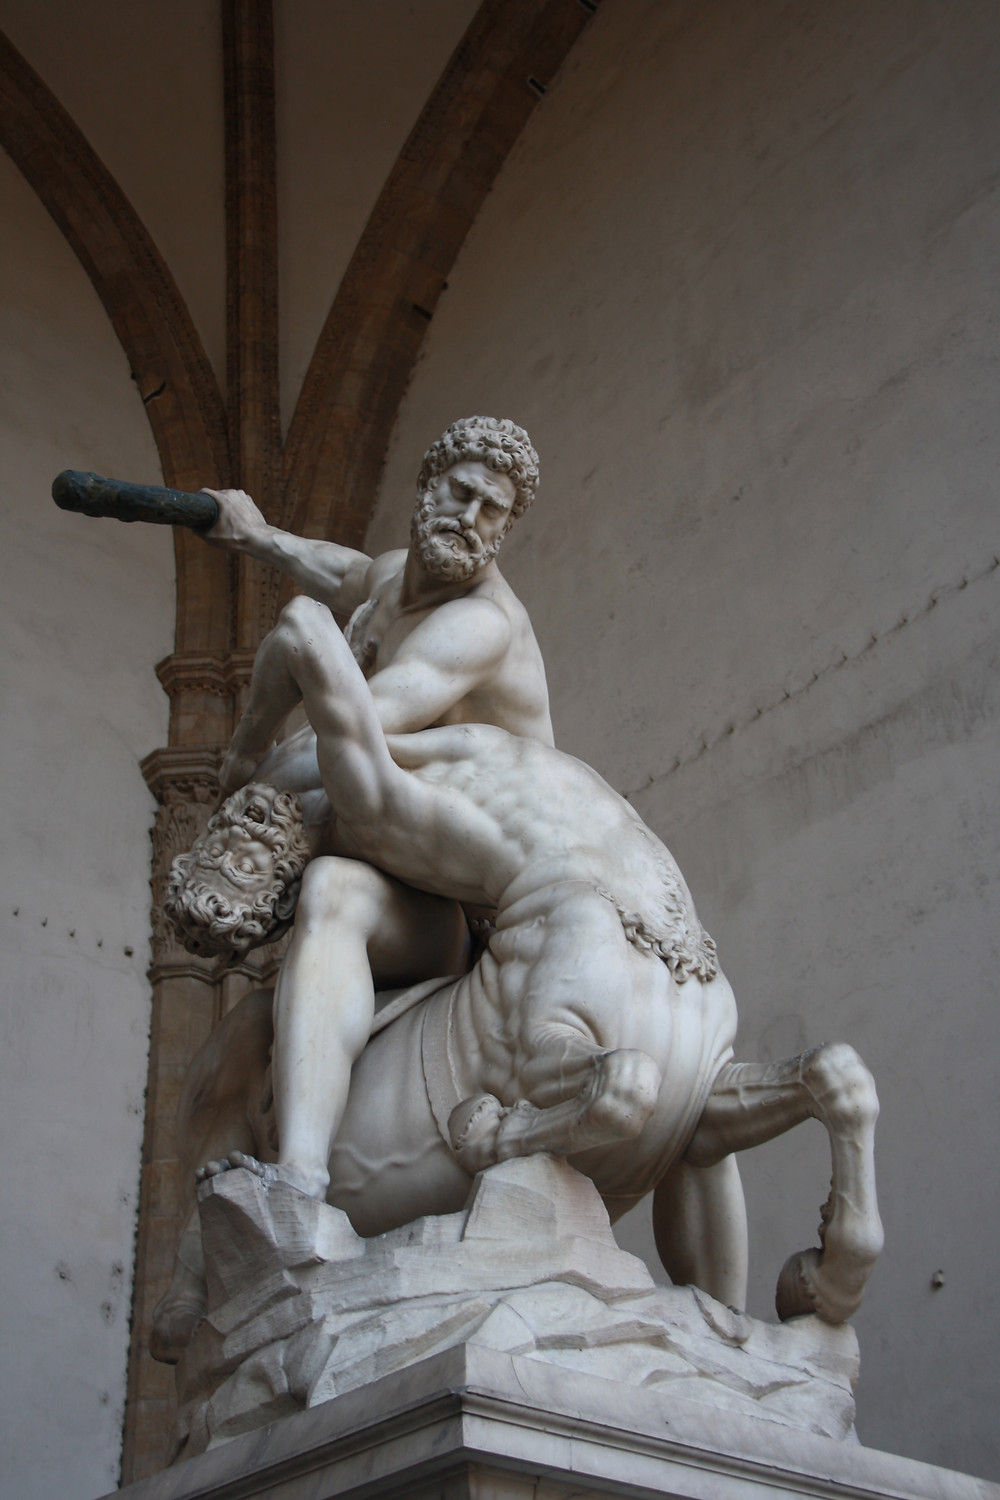 Chiron the centaur was noble and righteous but was overly risky with his behavior which caused him to mistakes that ultimately ended his life.